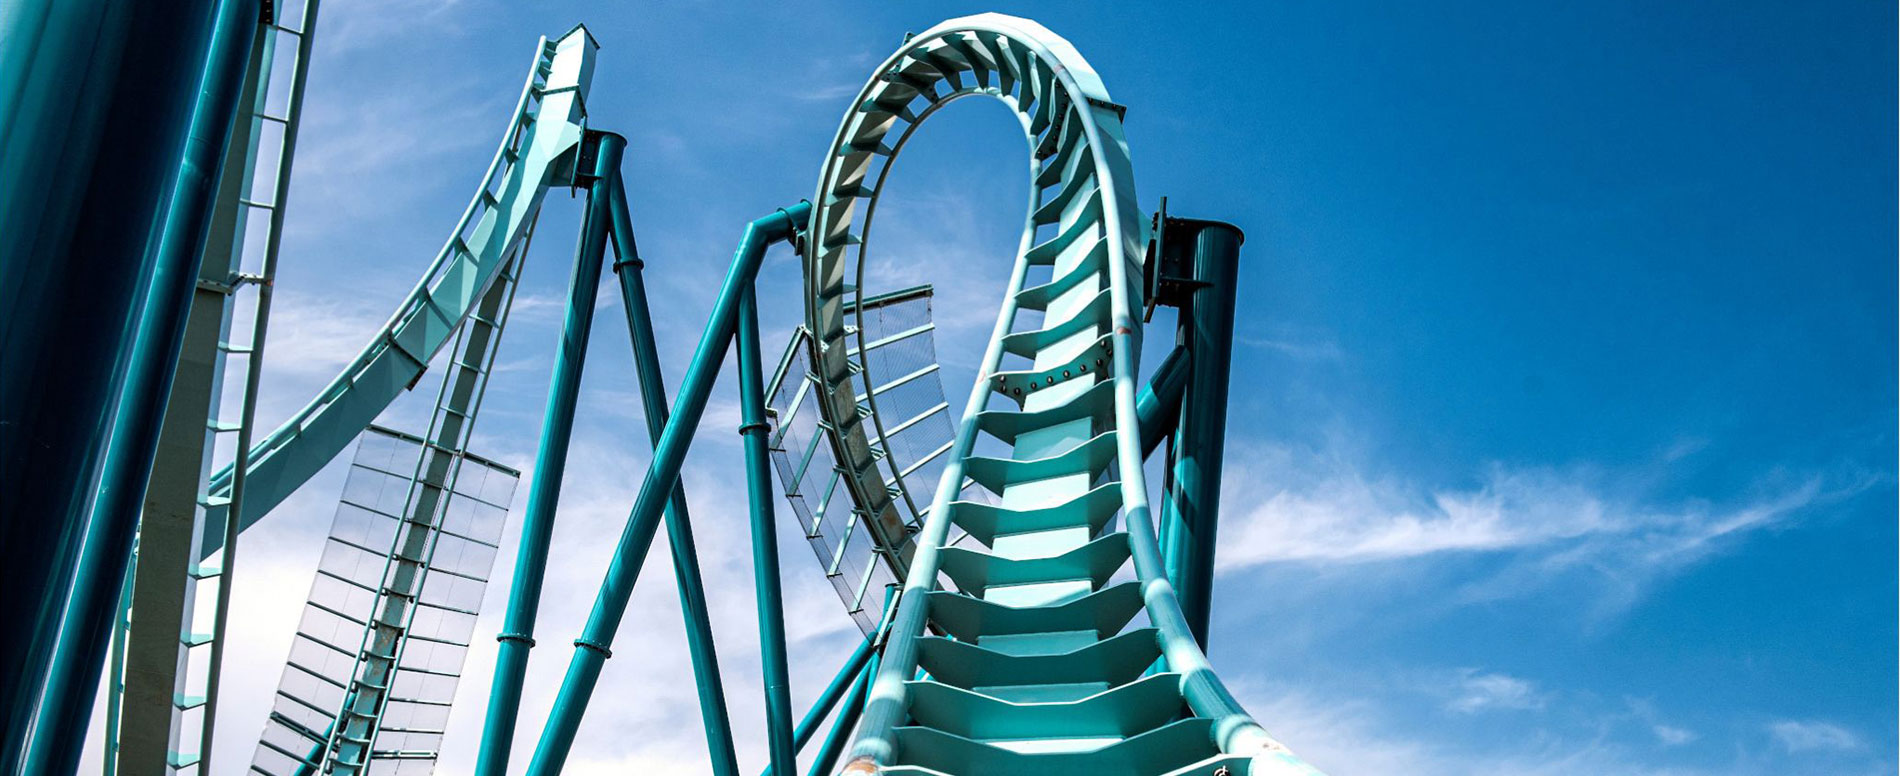 Rides and rollercoasters at SeaWorld San Diego